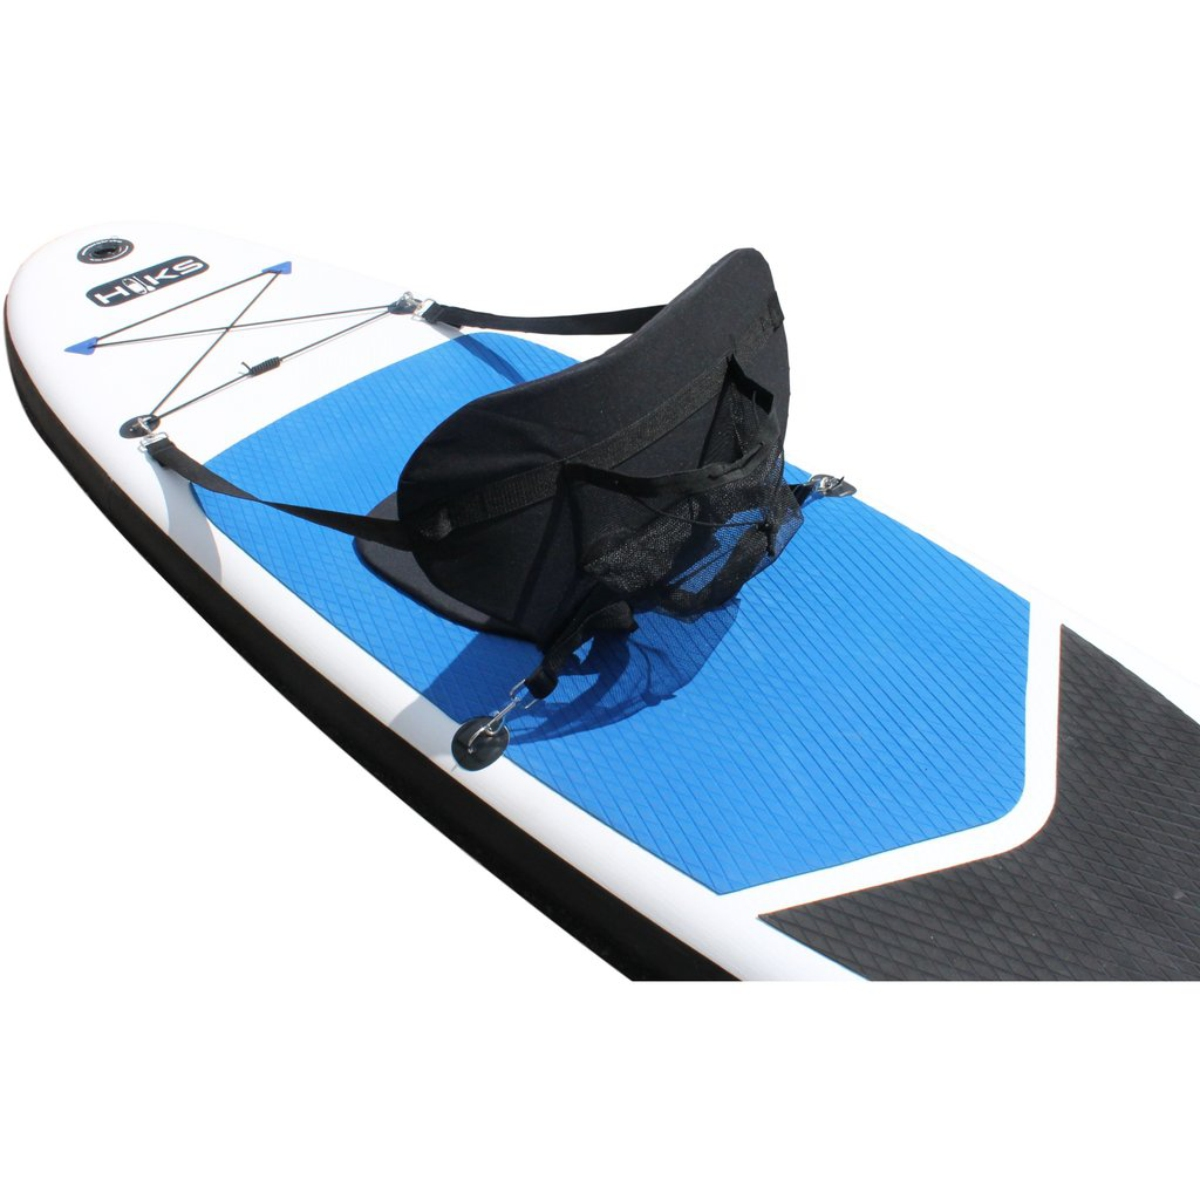 sup seat add-on